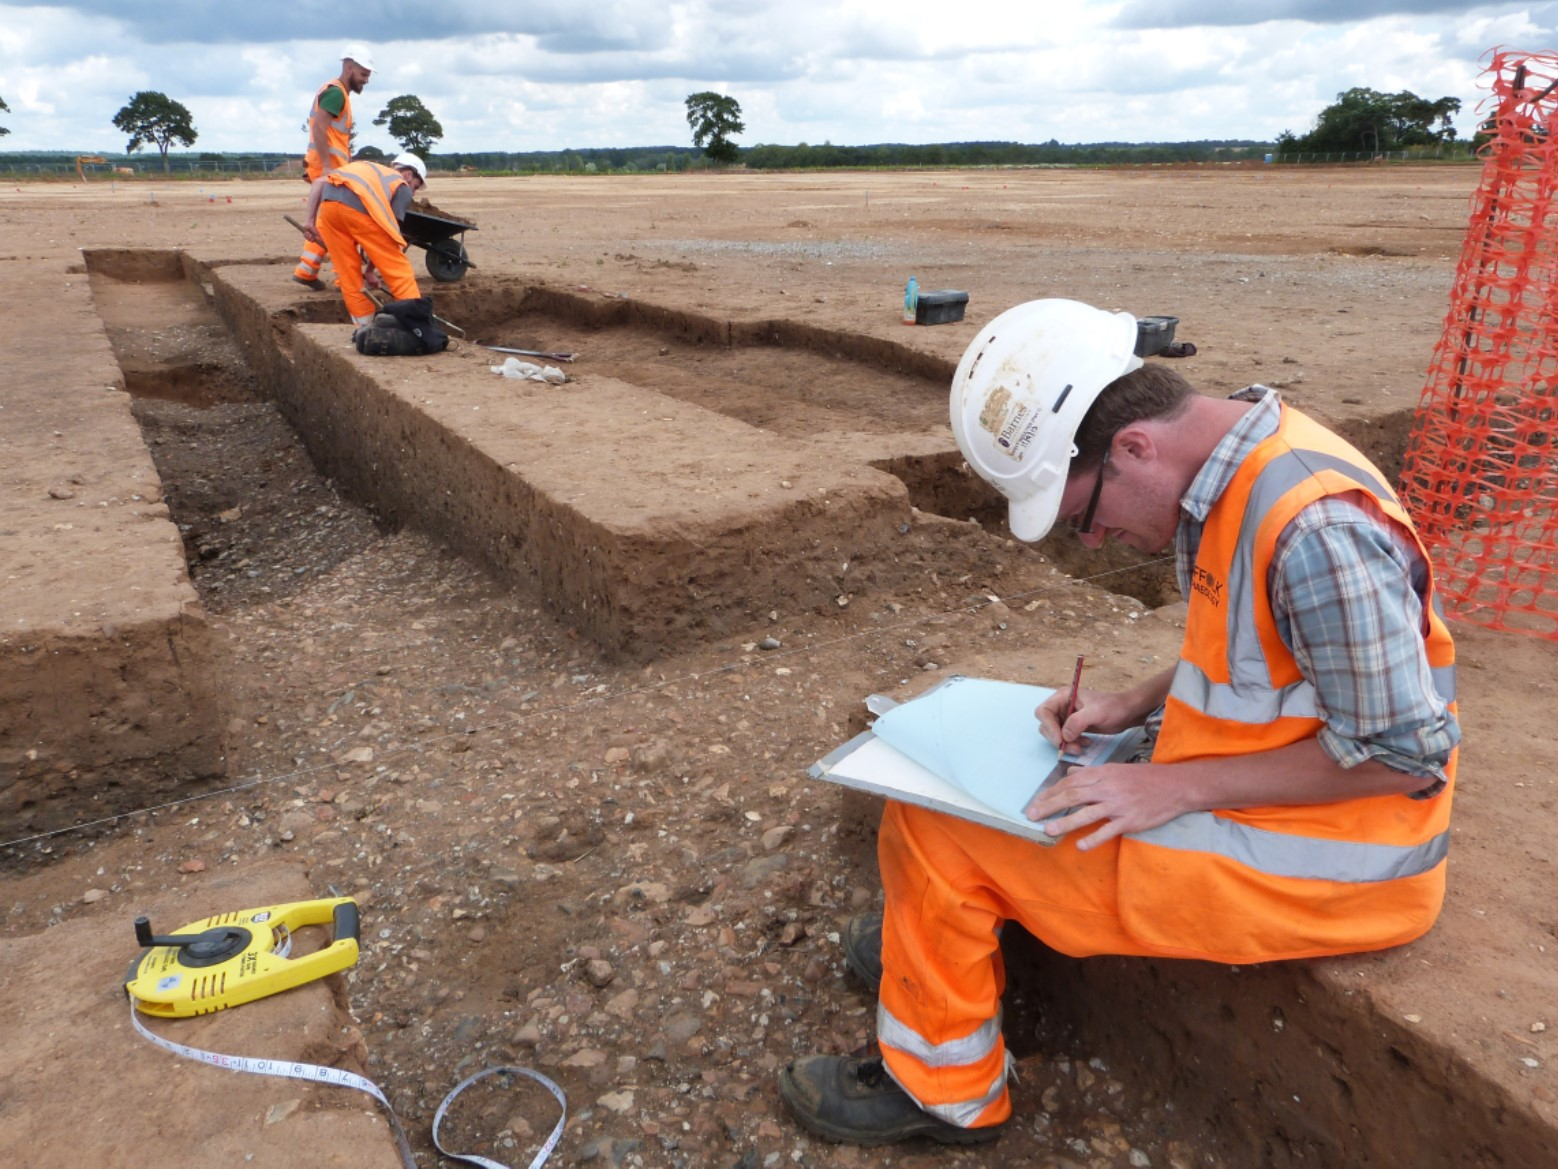 Excavating and recording a possible 'working hollow' at Marham Park